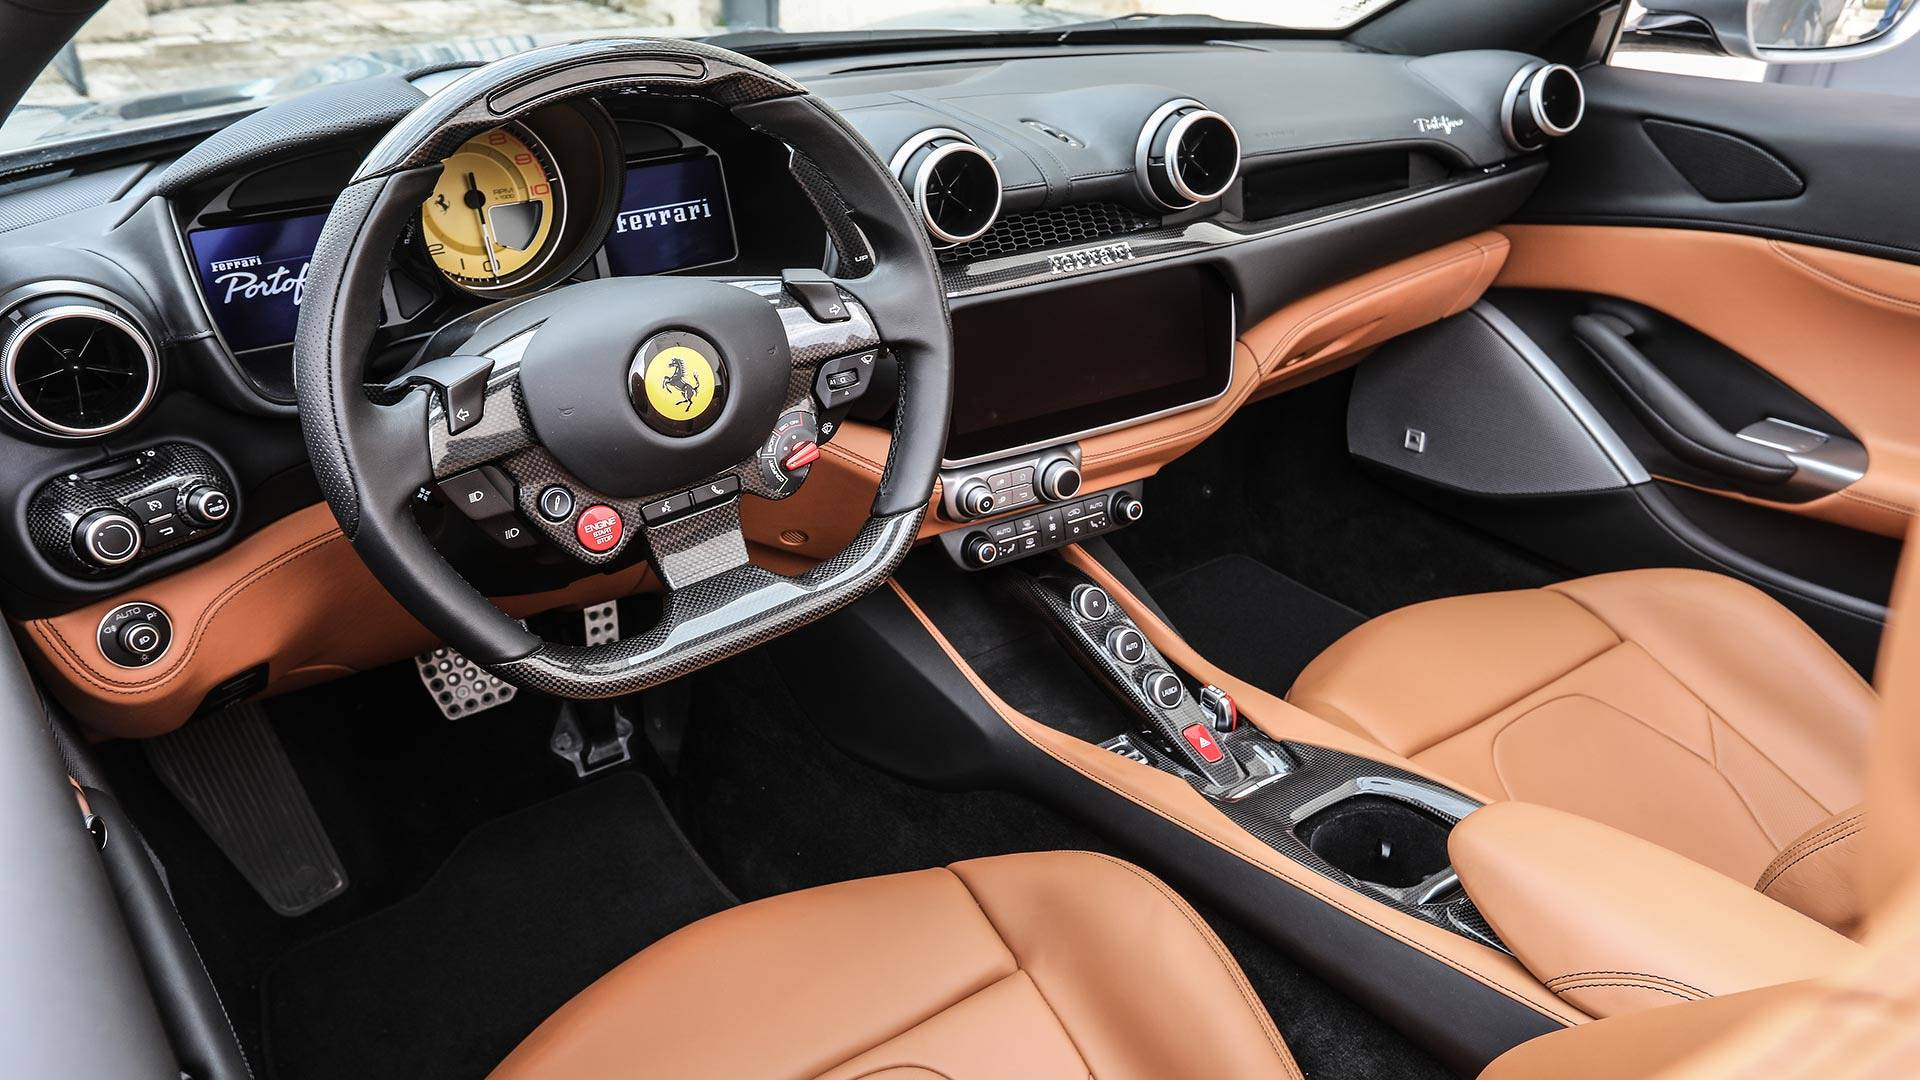 10 Ferrari Portofino Options You\u0027d Be Crazy To Pay For